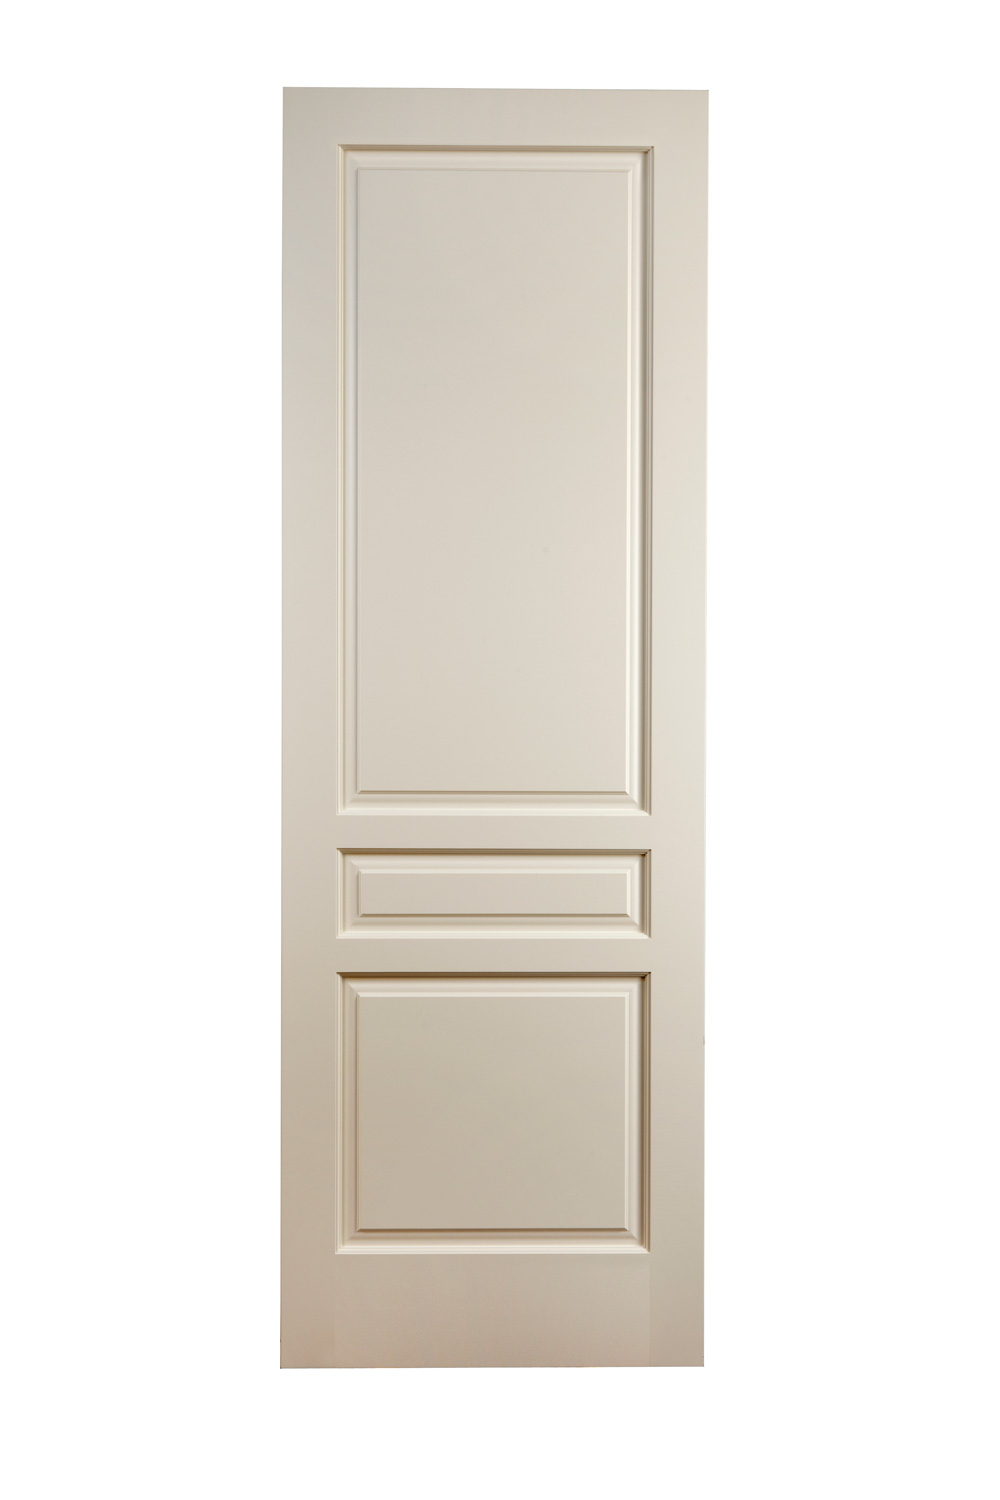 Interior Panel Doors Of Traditional Door Interior Panel Doors Design